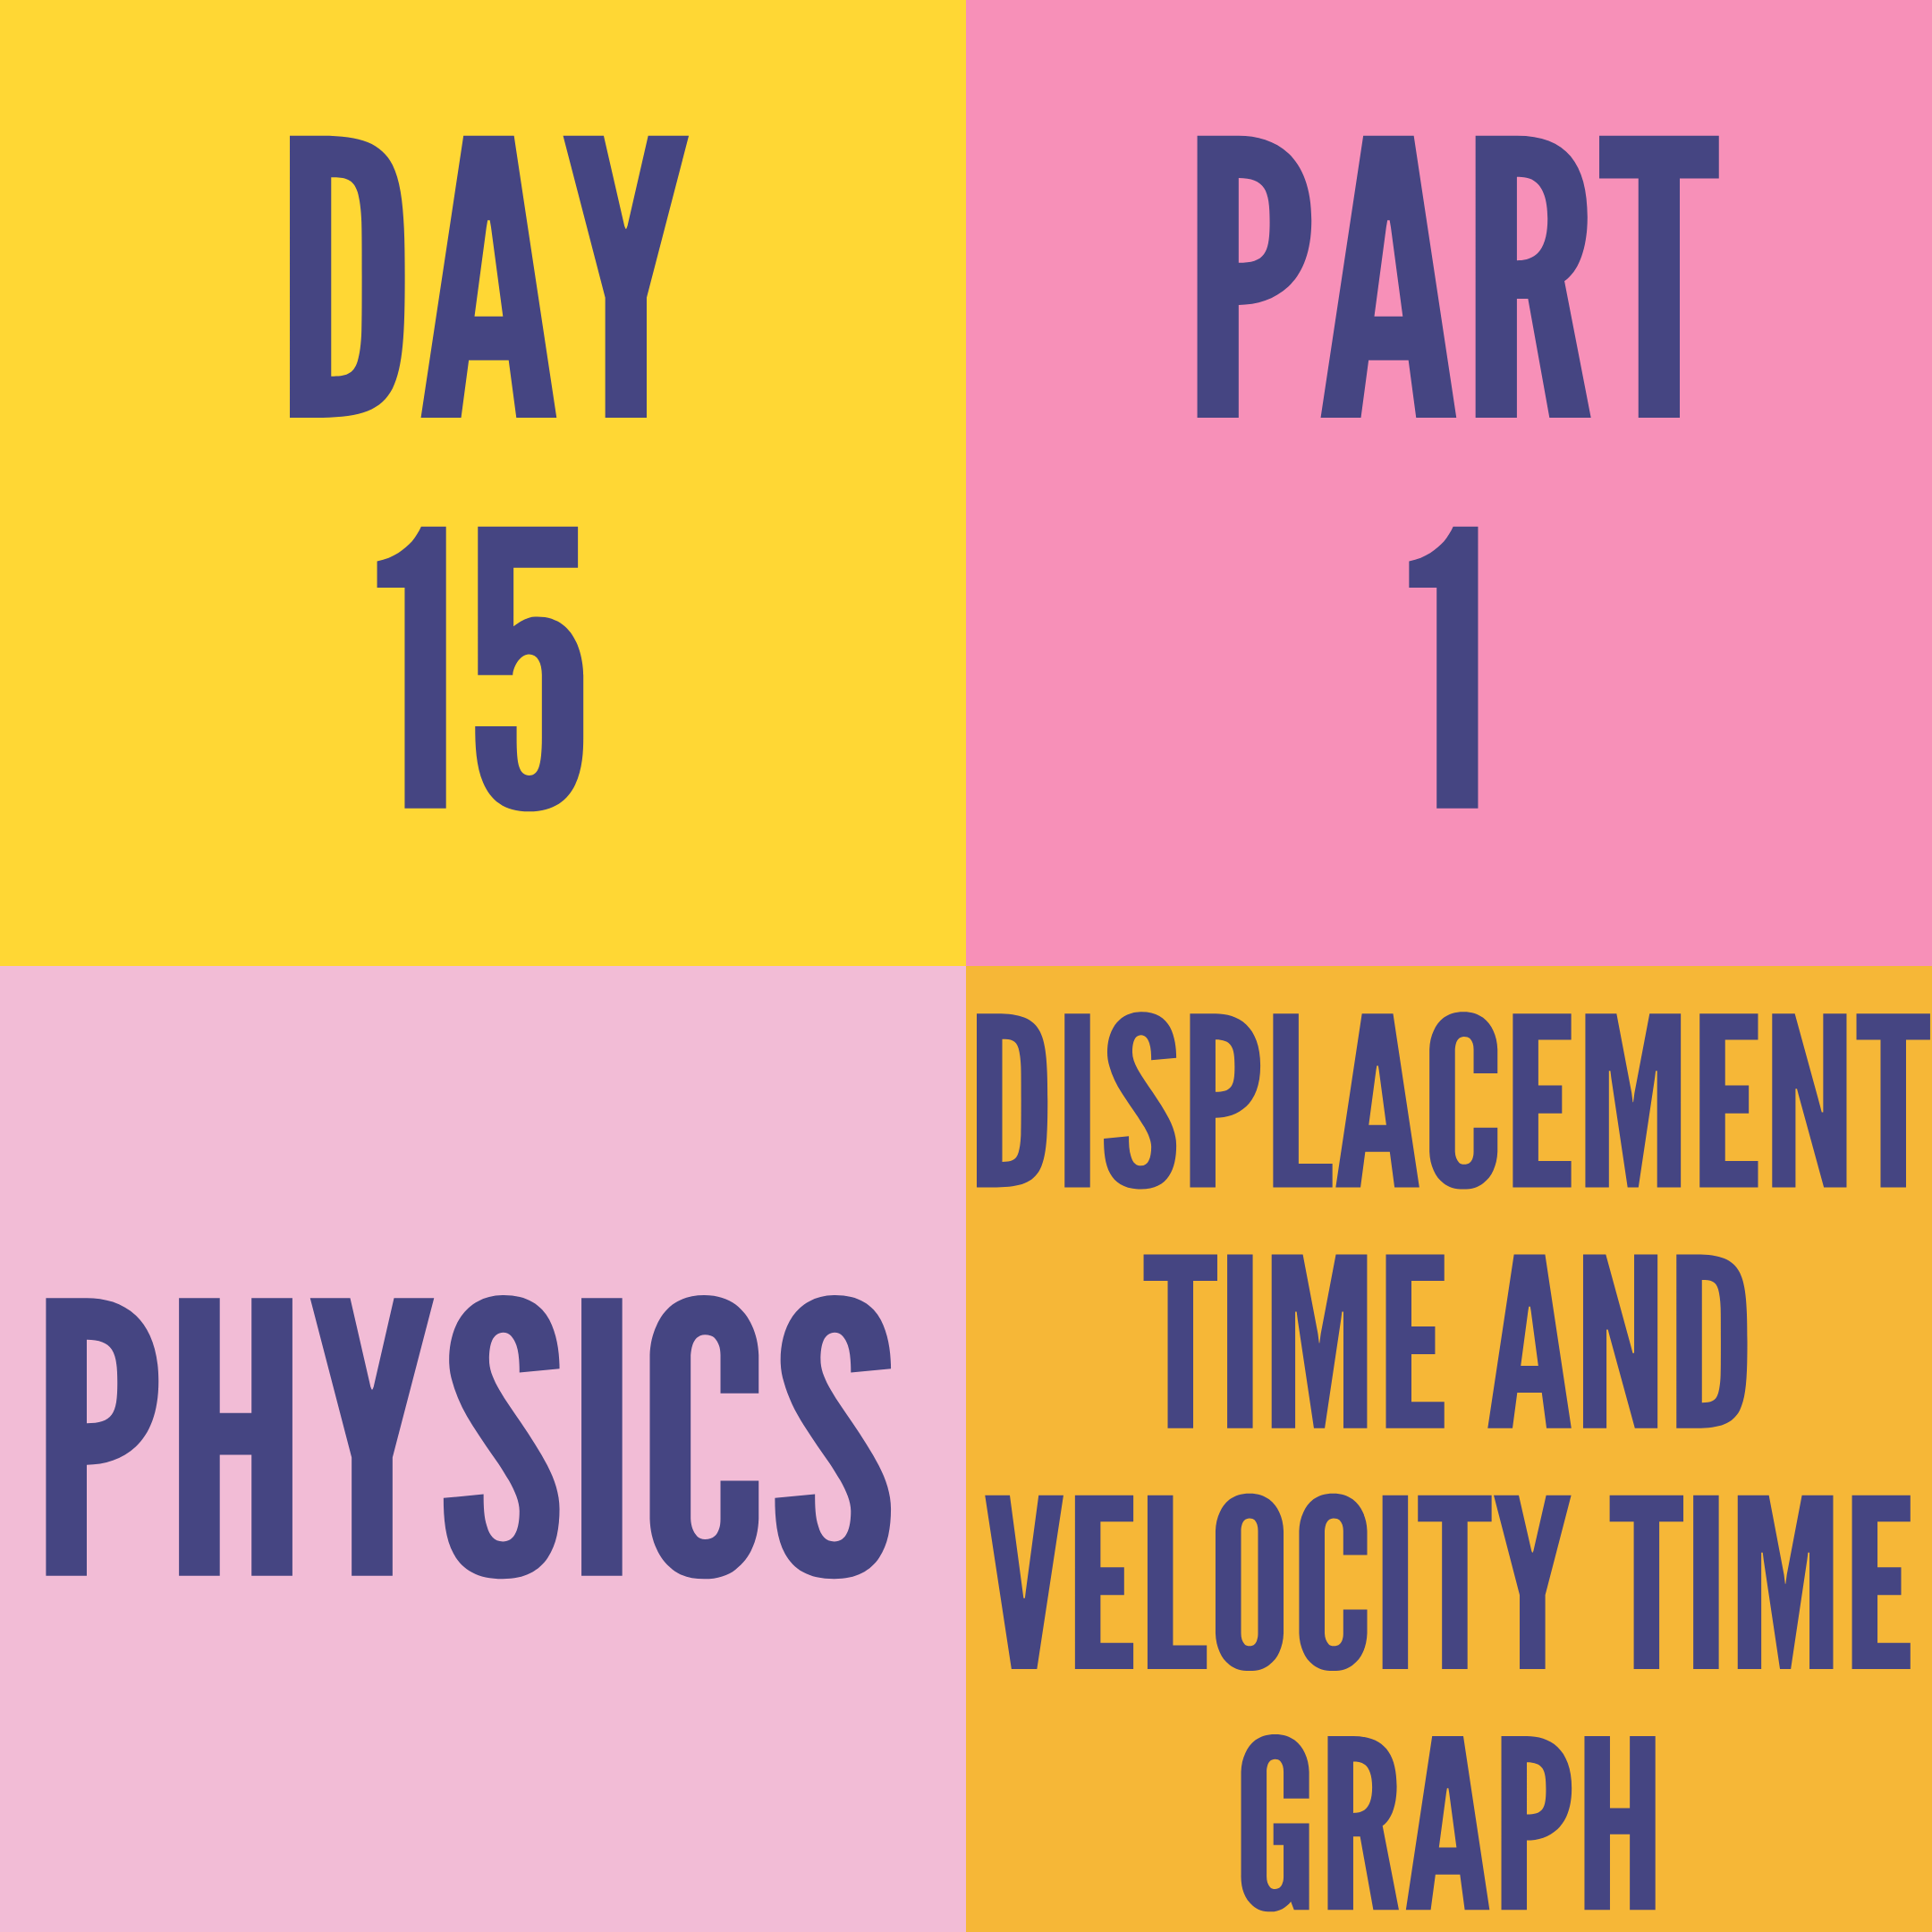 DAY-15 PART-1 DISPLACEMENT TIME AND VELOCITY TIME GRAPH